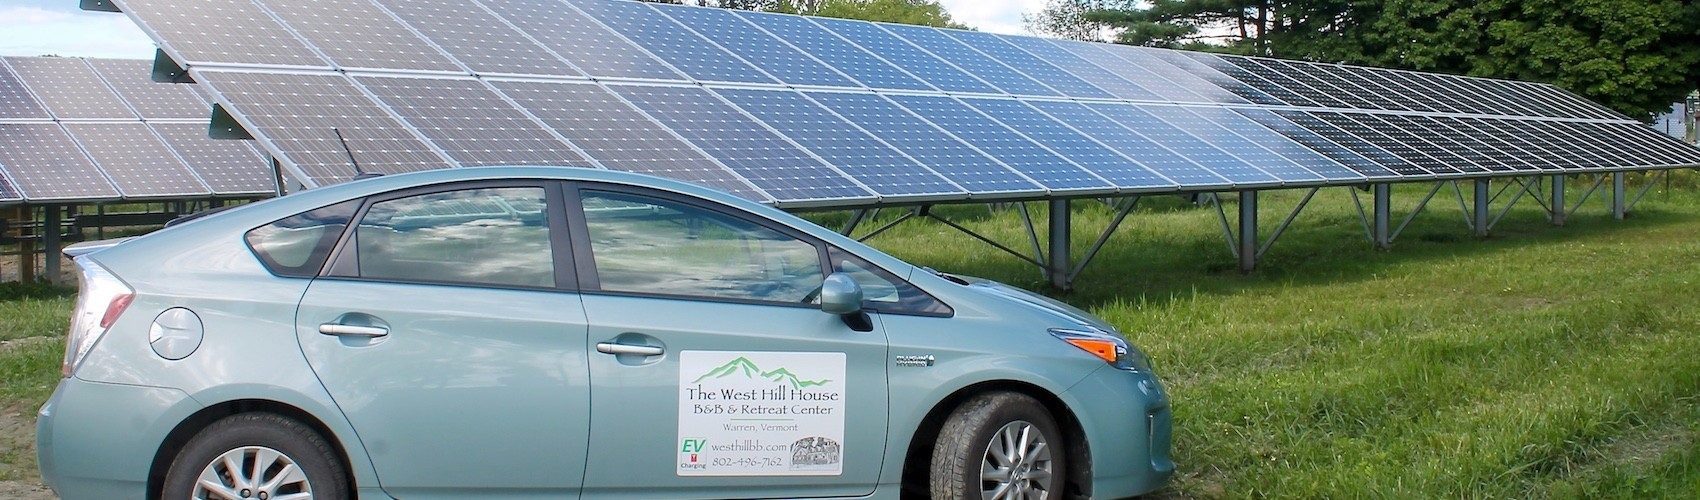 West Hill House B&B Prius at Solar Array